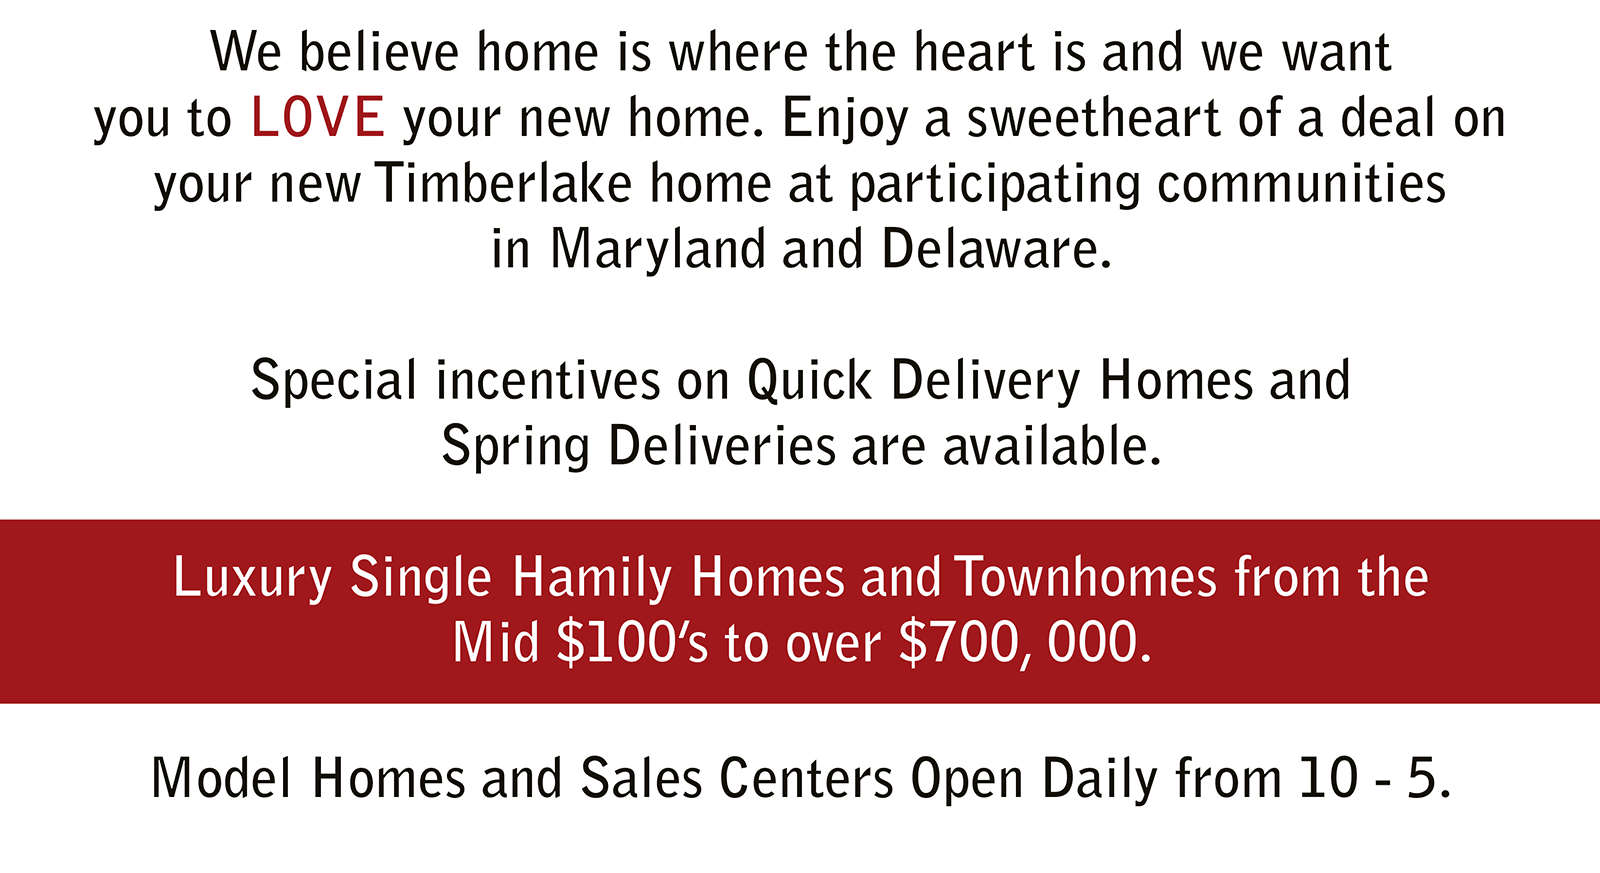 We believe home is where the heart is and we want you to LOVE your new home.